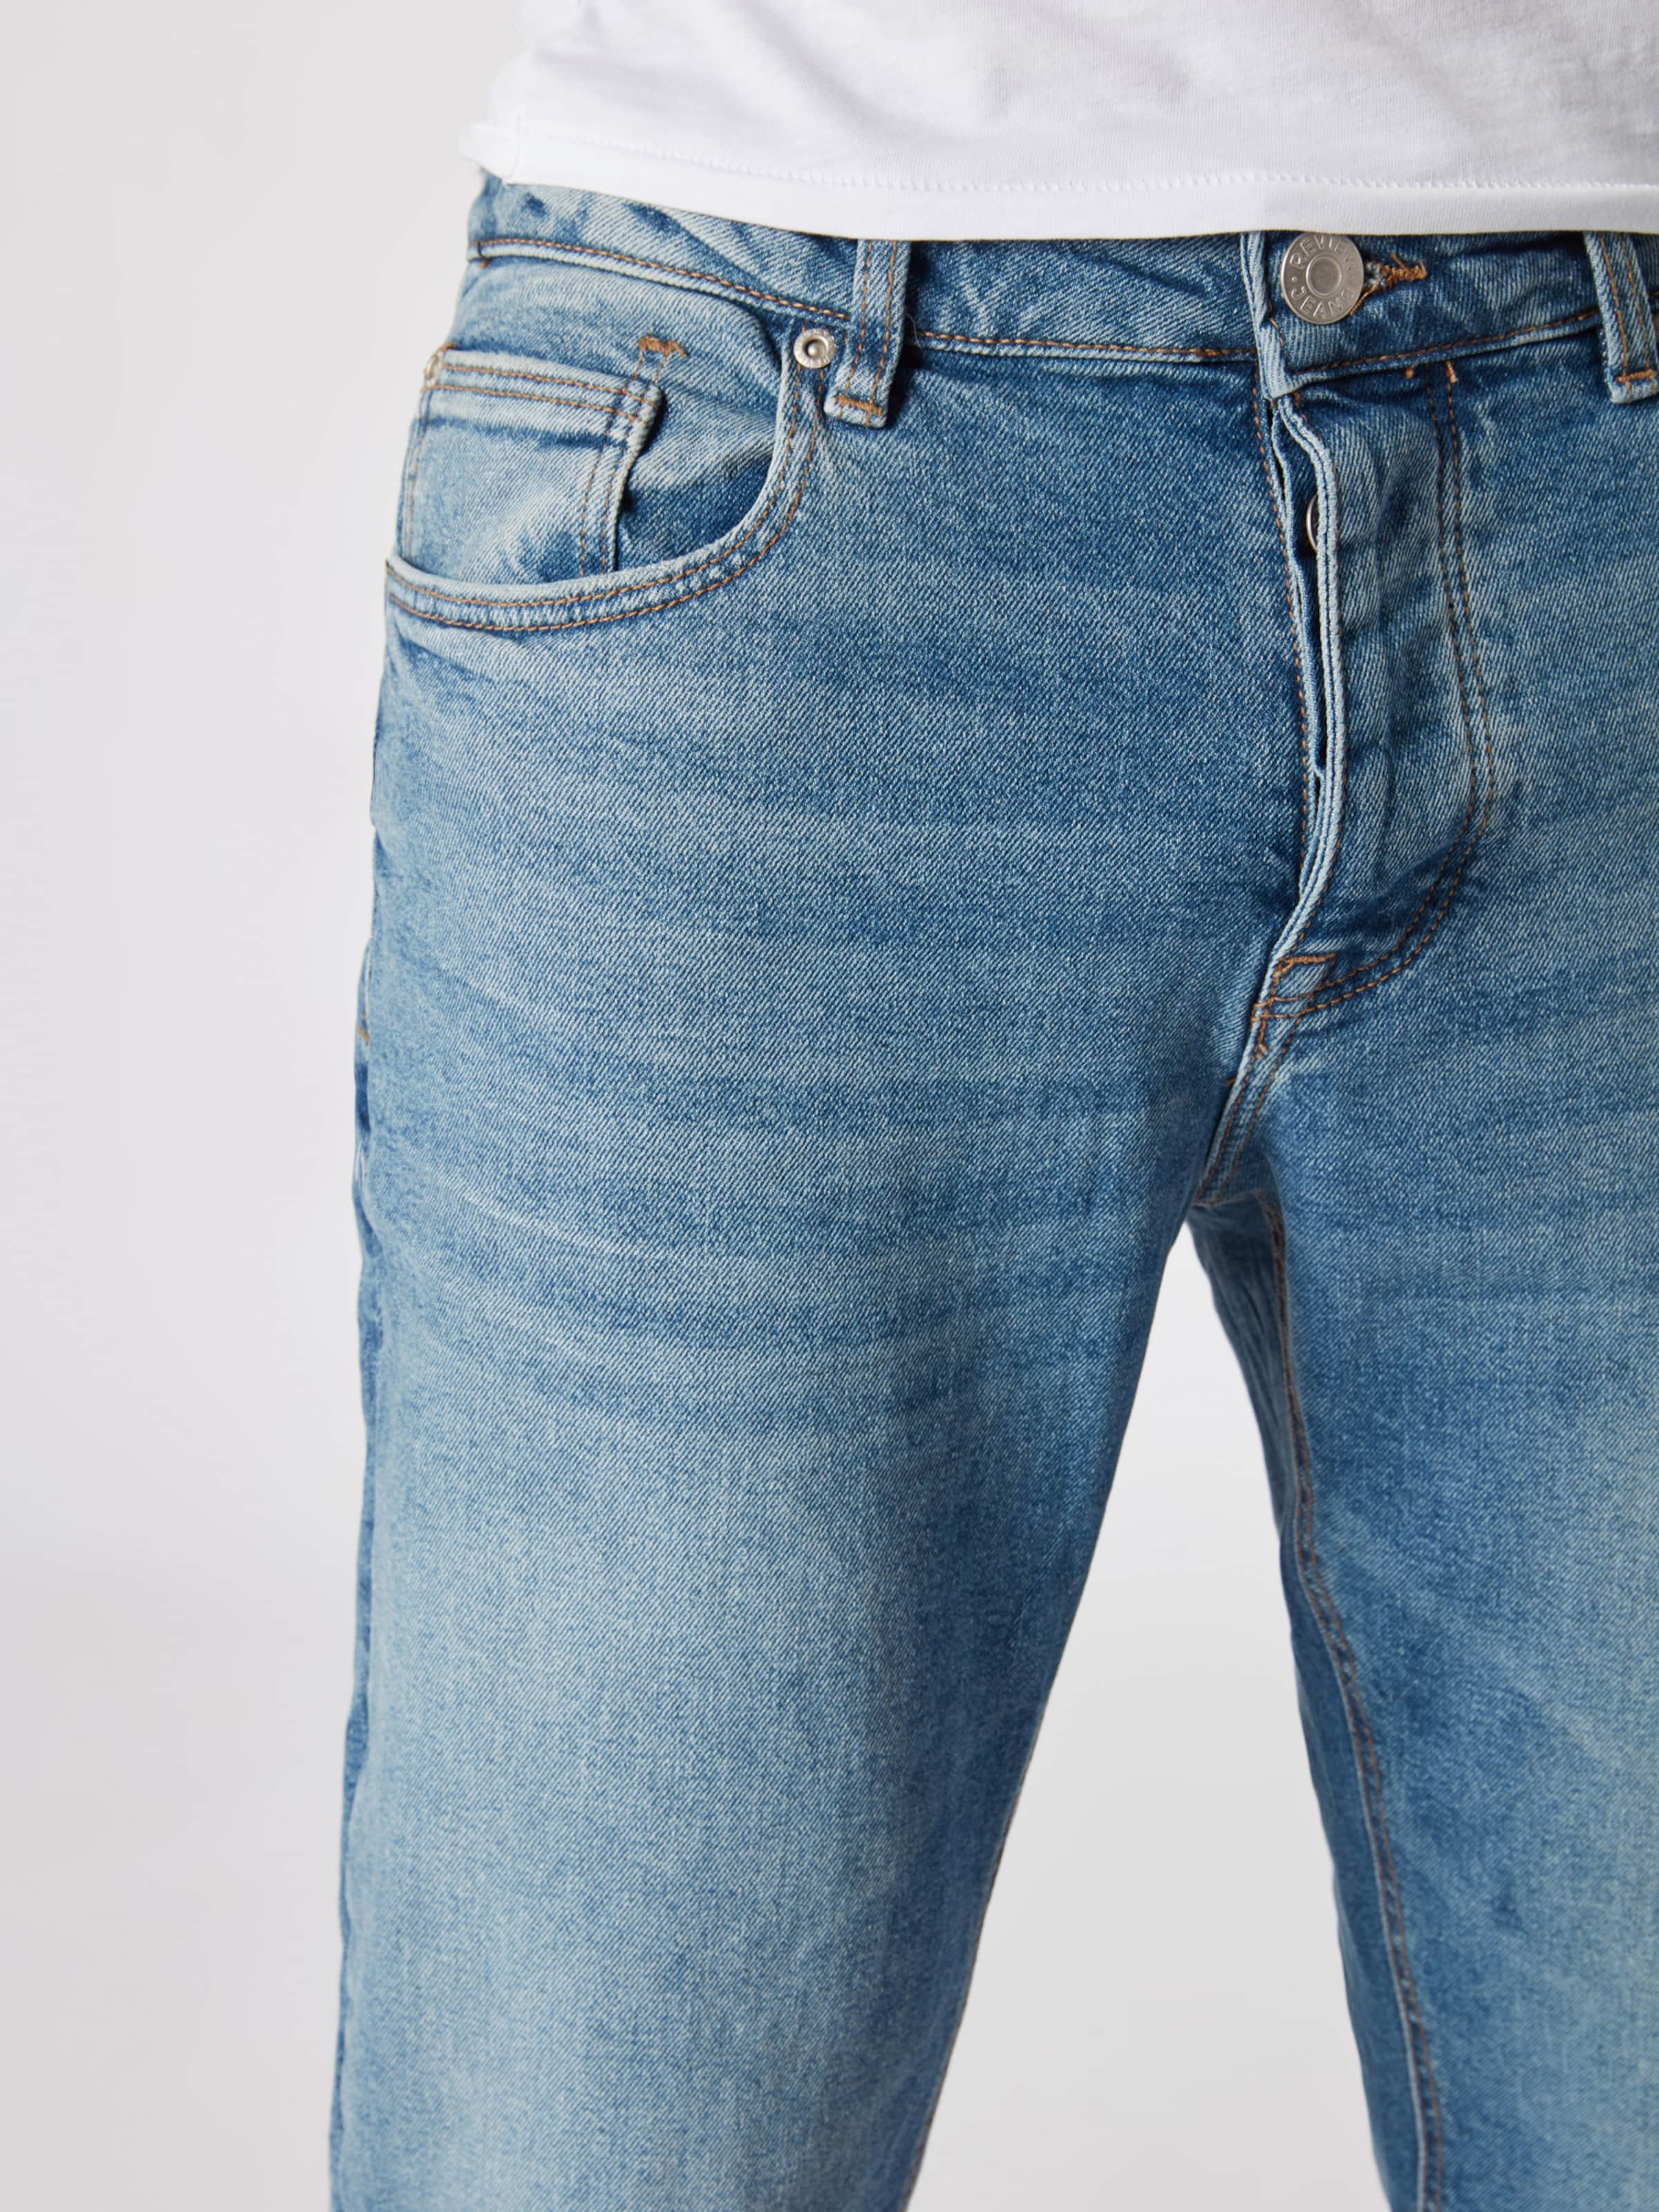 Review Bleu Denim Authblue' Jean 'slim En mOv0N8nw